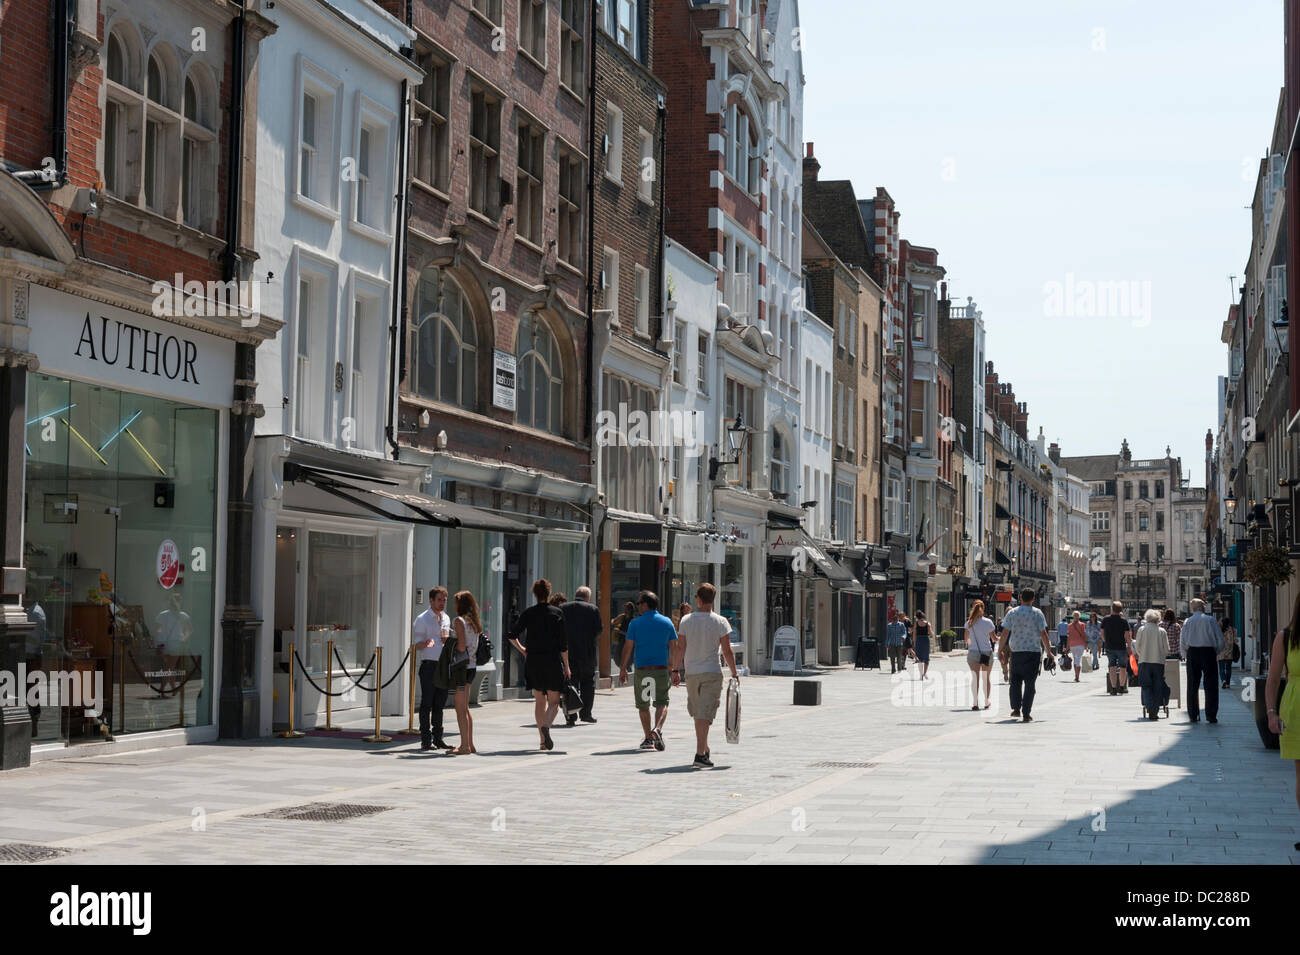 Shops and shoppers in South Molton Street London UK on a sunny summer day - Stock Image